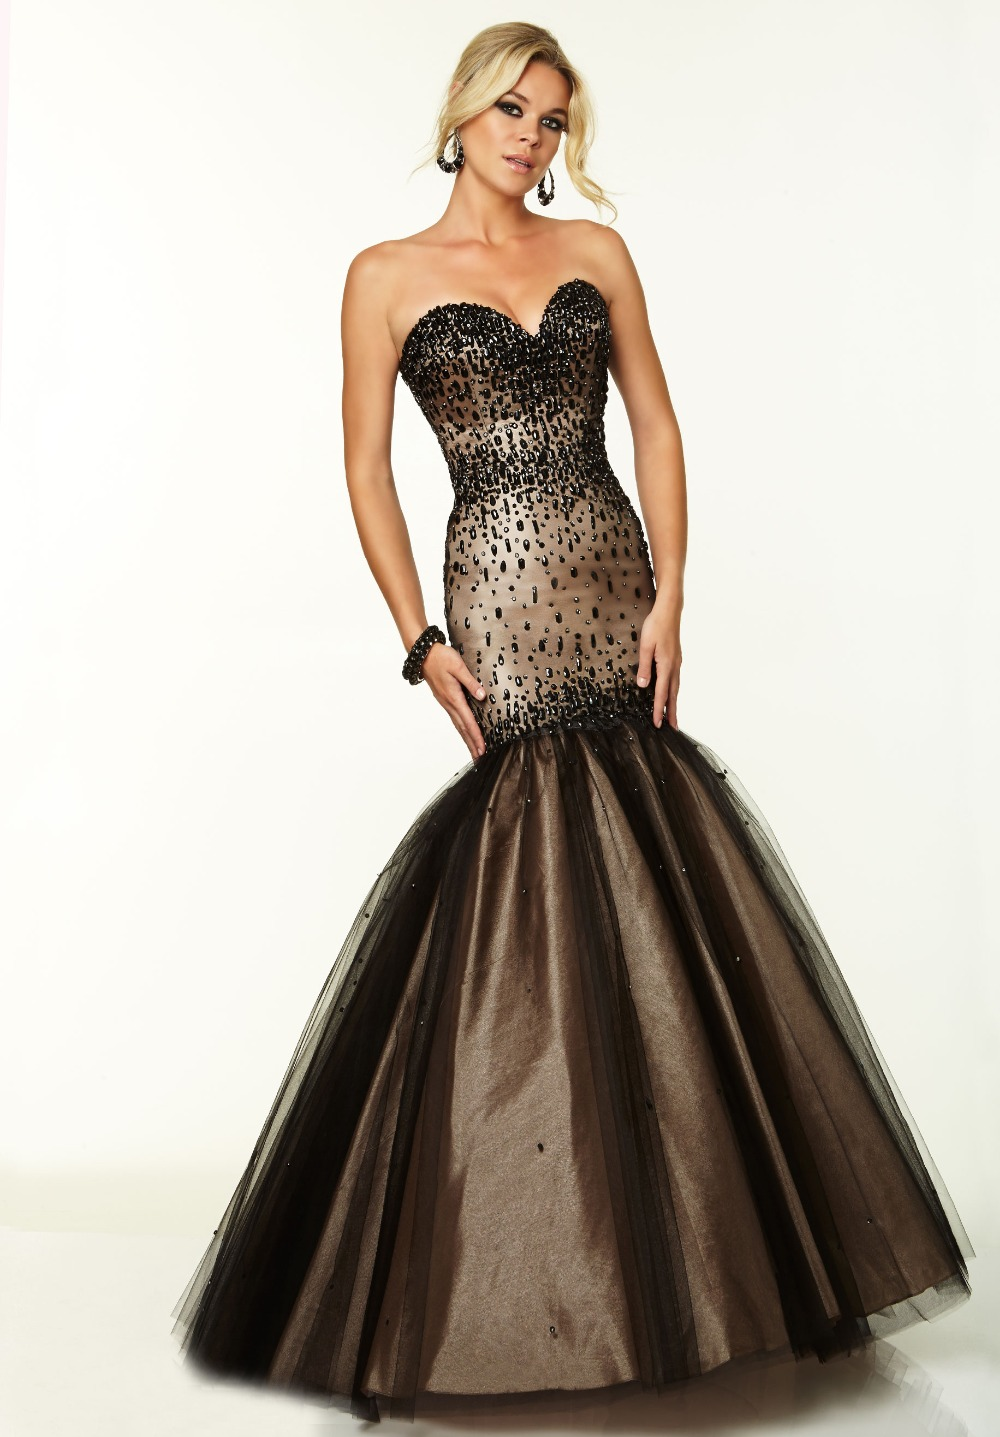 Compare Prices on Black Mermaid Prom Dress- Online Shopping/Buy ...